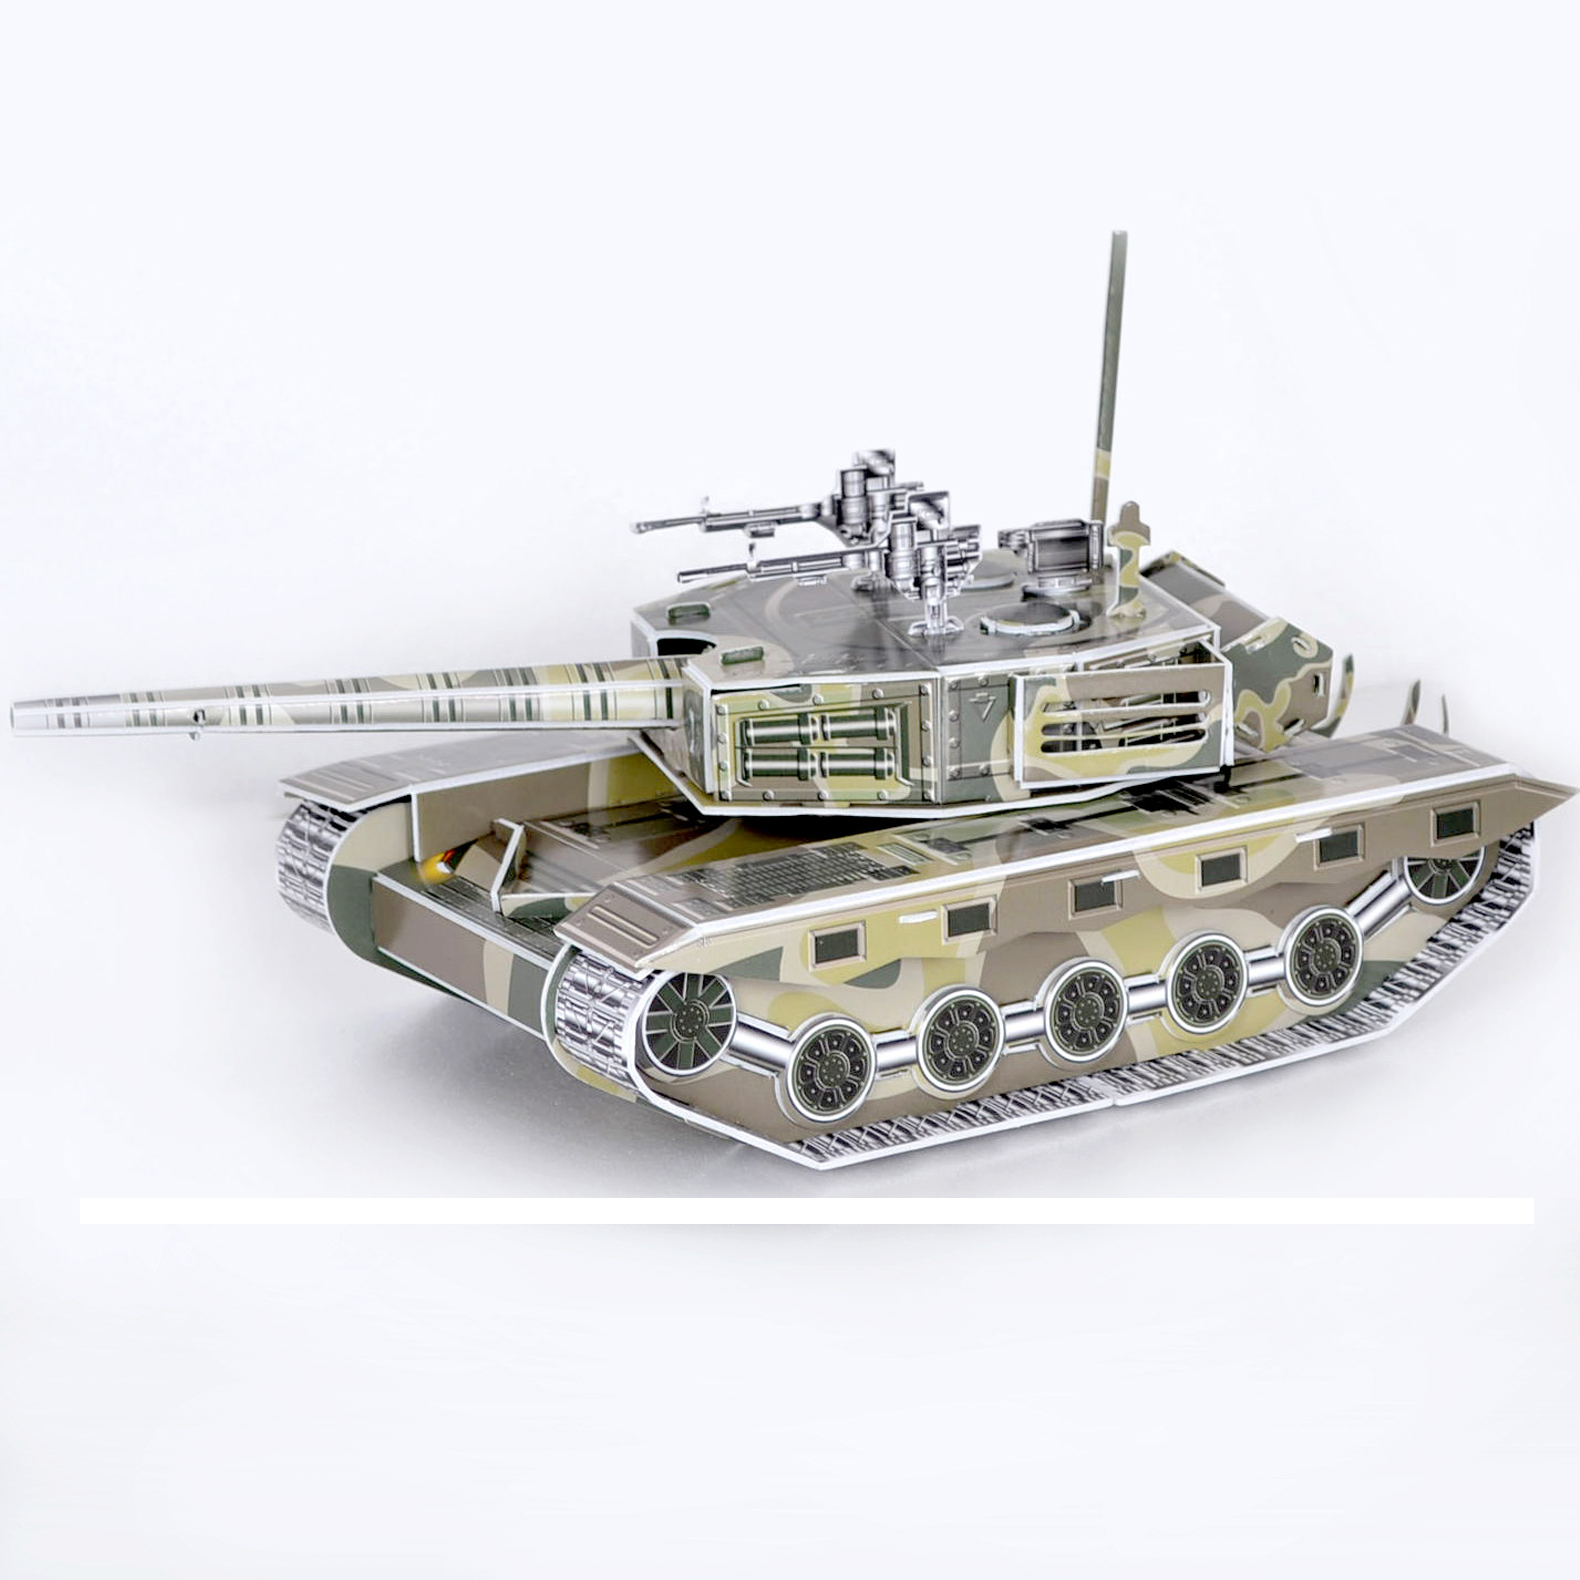 New arrival tank three-dimensional puzzle 3d assembling model armored car educational toys military tank(China (Mainland))